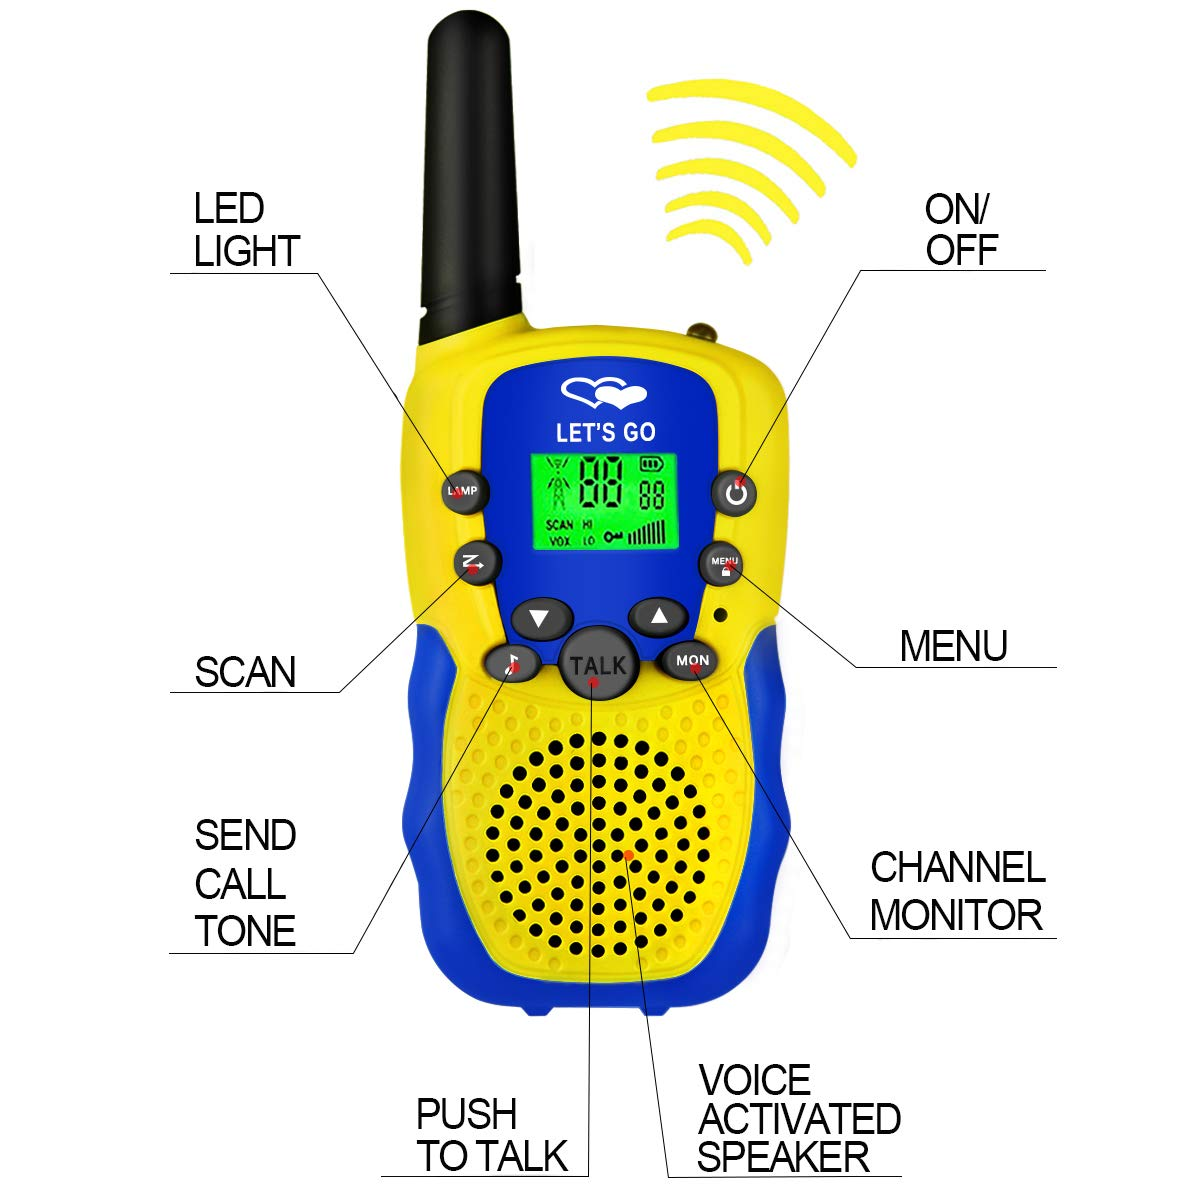 HODO Popular Outdoor Toys for 3-12 Year Old Boys, Long Range Walkie Talkies for Kids Toys for 3-12 Year Old Girls Gifts for 3-12 Year Old Boy Boy Toys Age 3-12 Girl Toys Gifts Age 3-12 HDHTS13 by HOdo (Image #3)